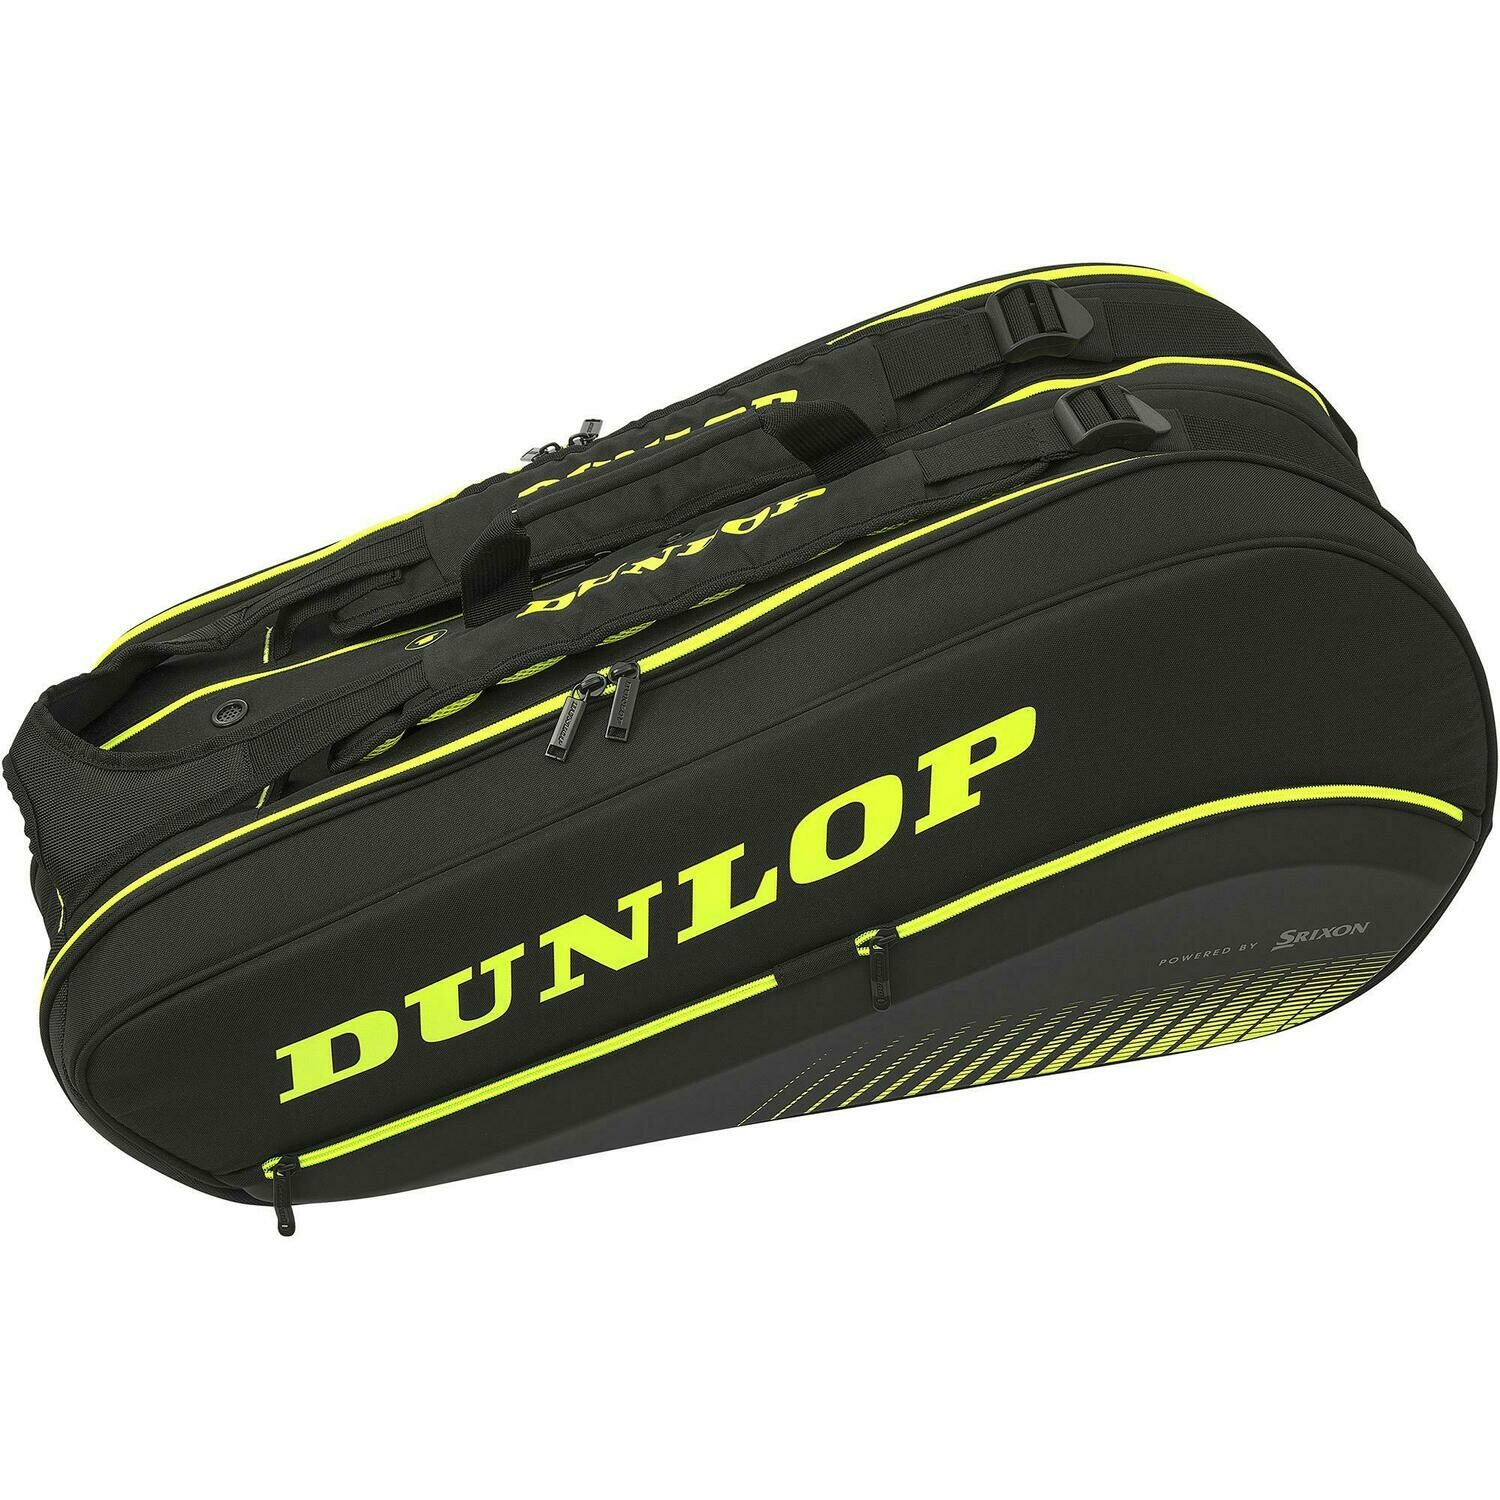 Dunlop SX Performance Thermo 8 Racket Bag - Black